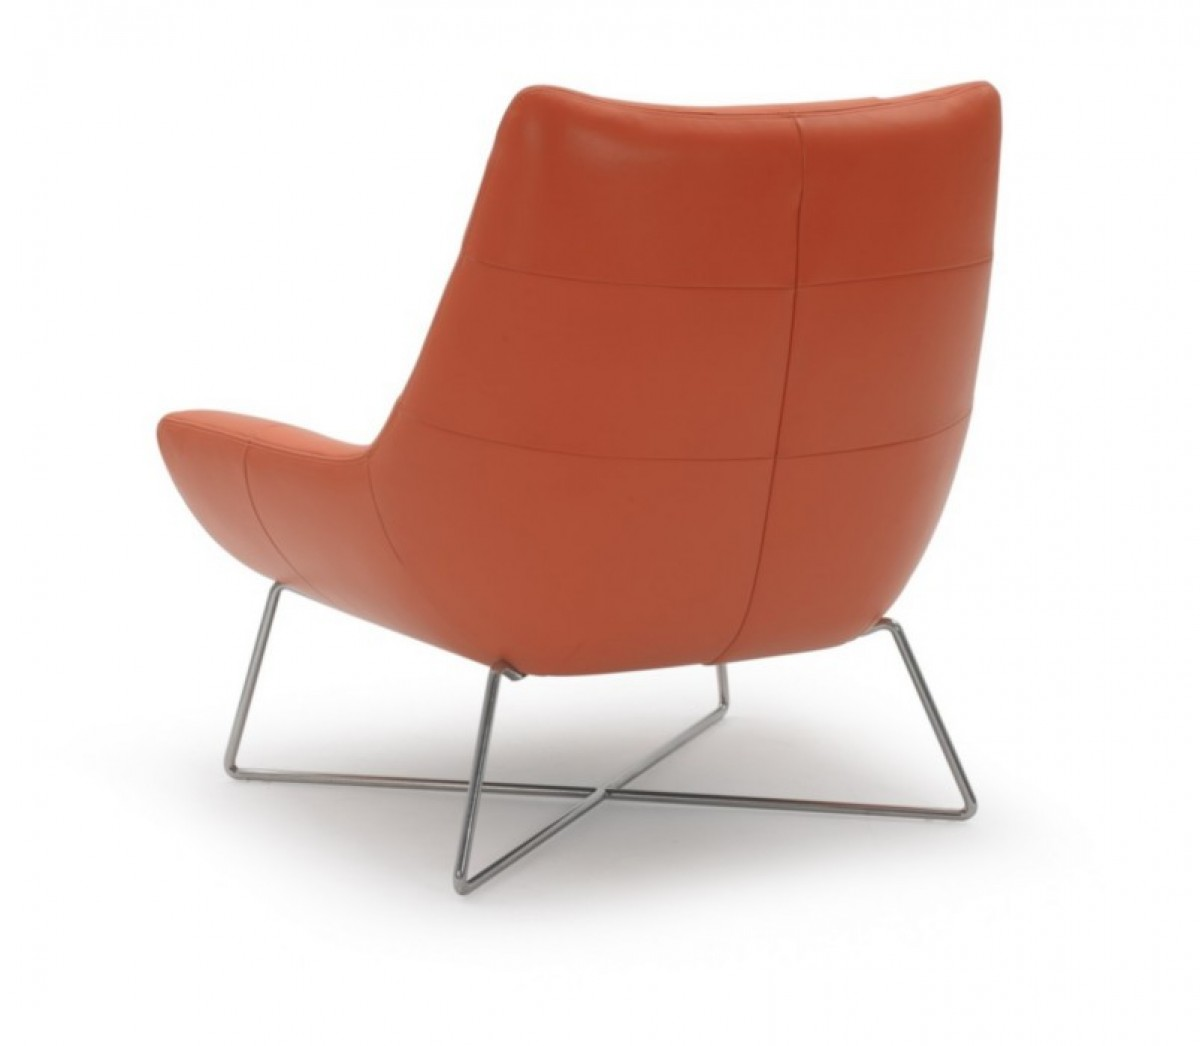 modern steel chair design value city chairs orange leather and stainless lounge